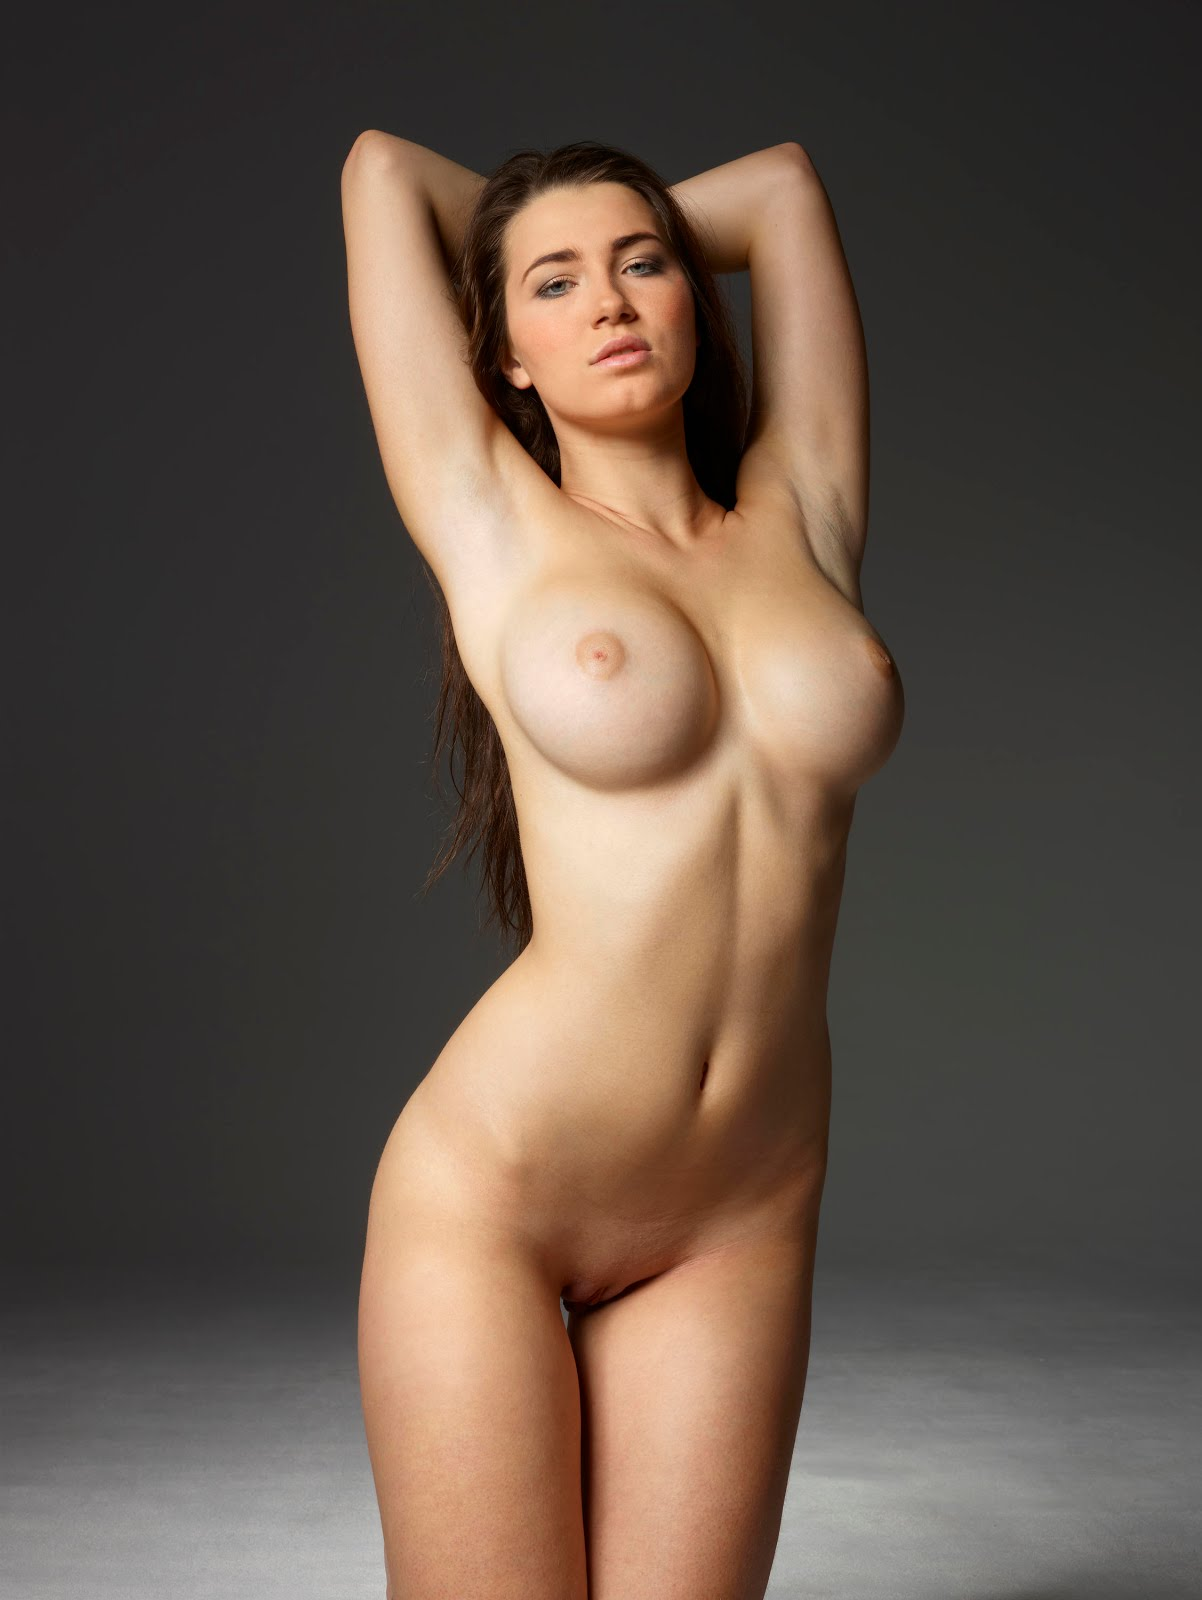 amazing breasts naked